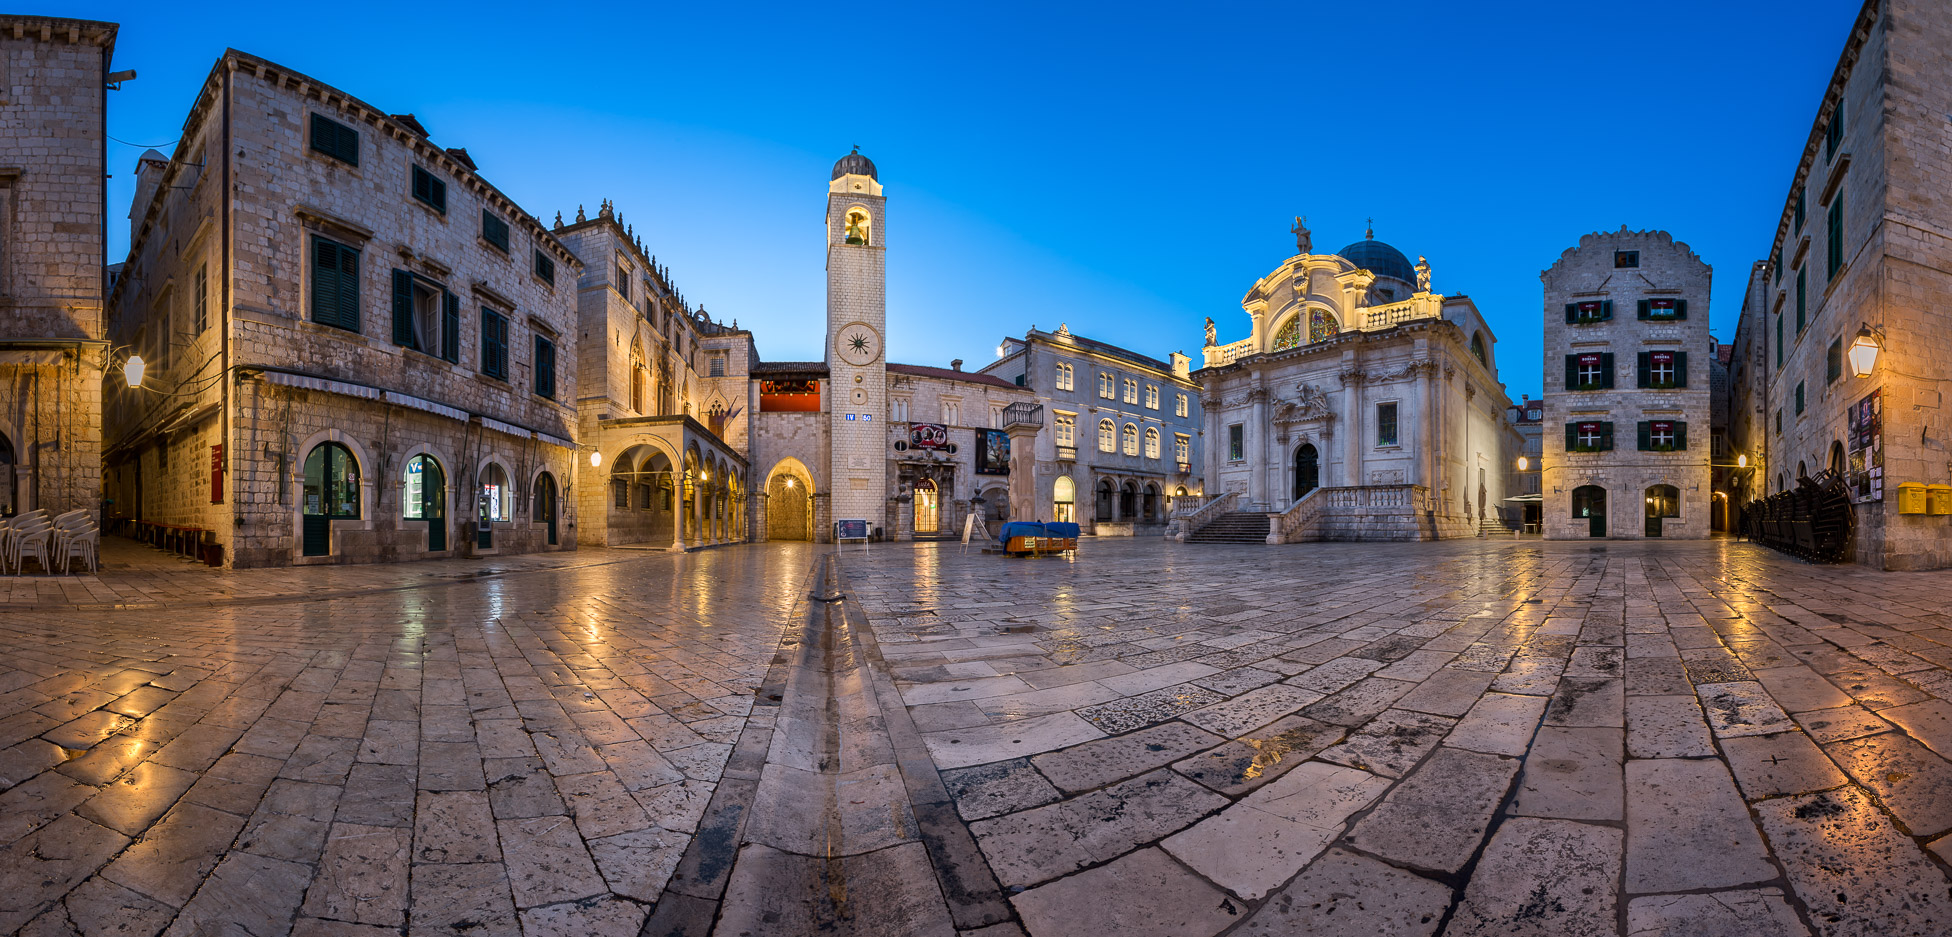 Panorama of Luza Square and Sponza Palace in Dubrovnik, Croatia